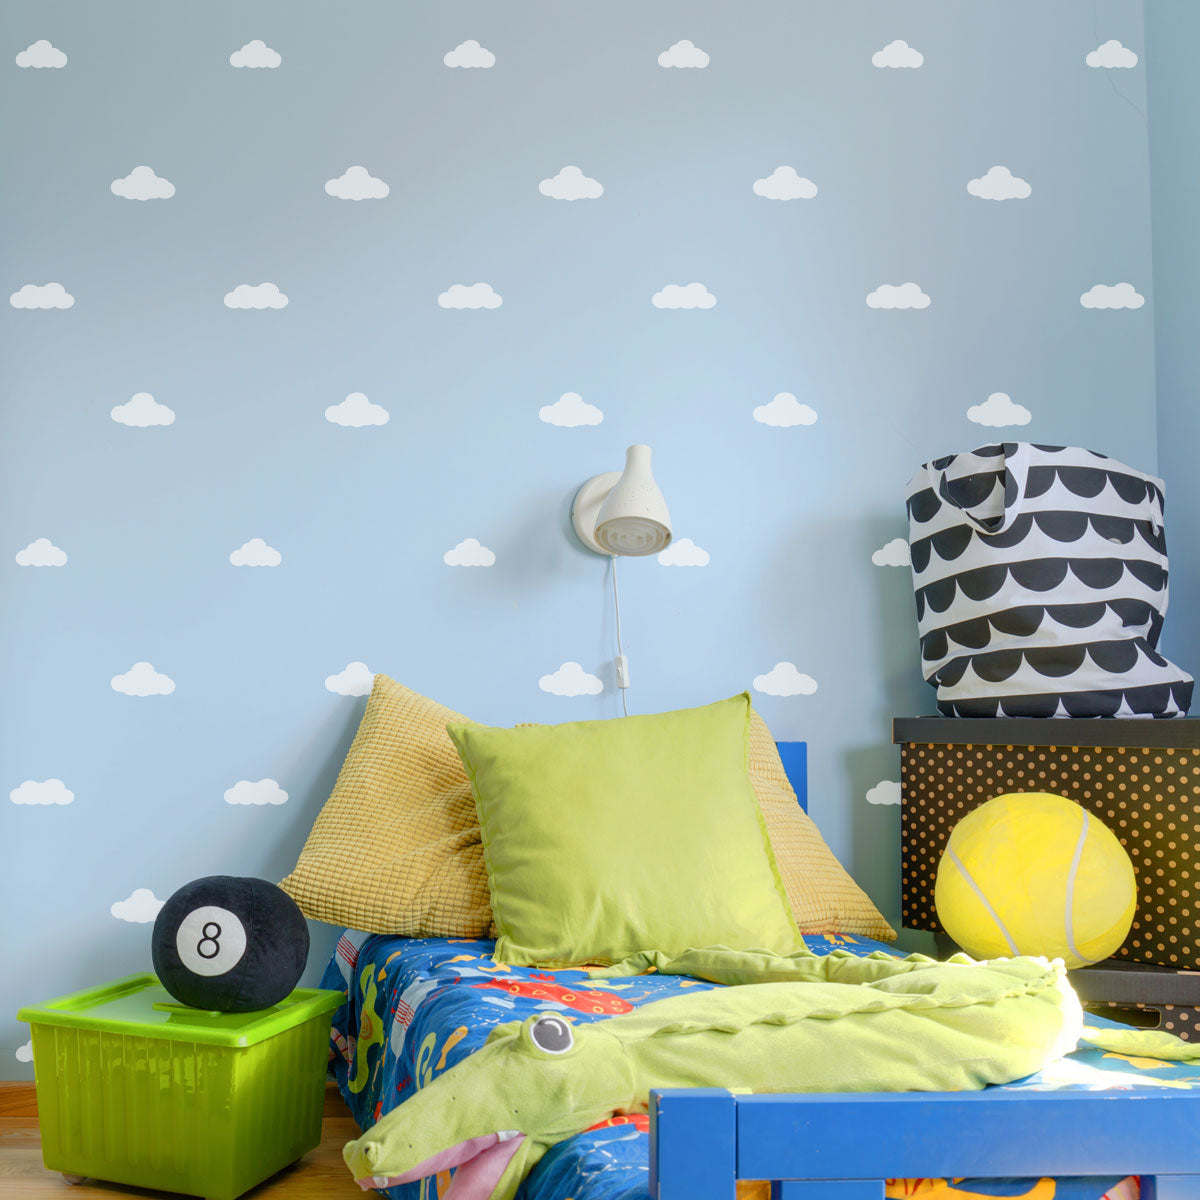 CraftStar Clouds Stencil Set in Boys Bedroom